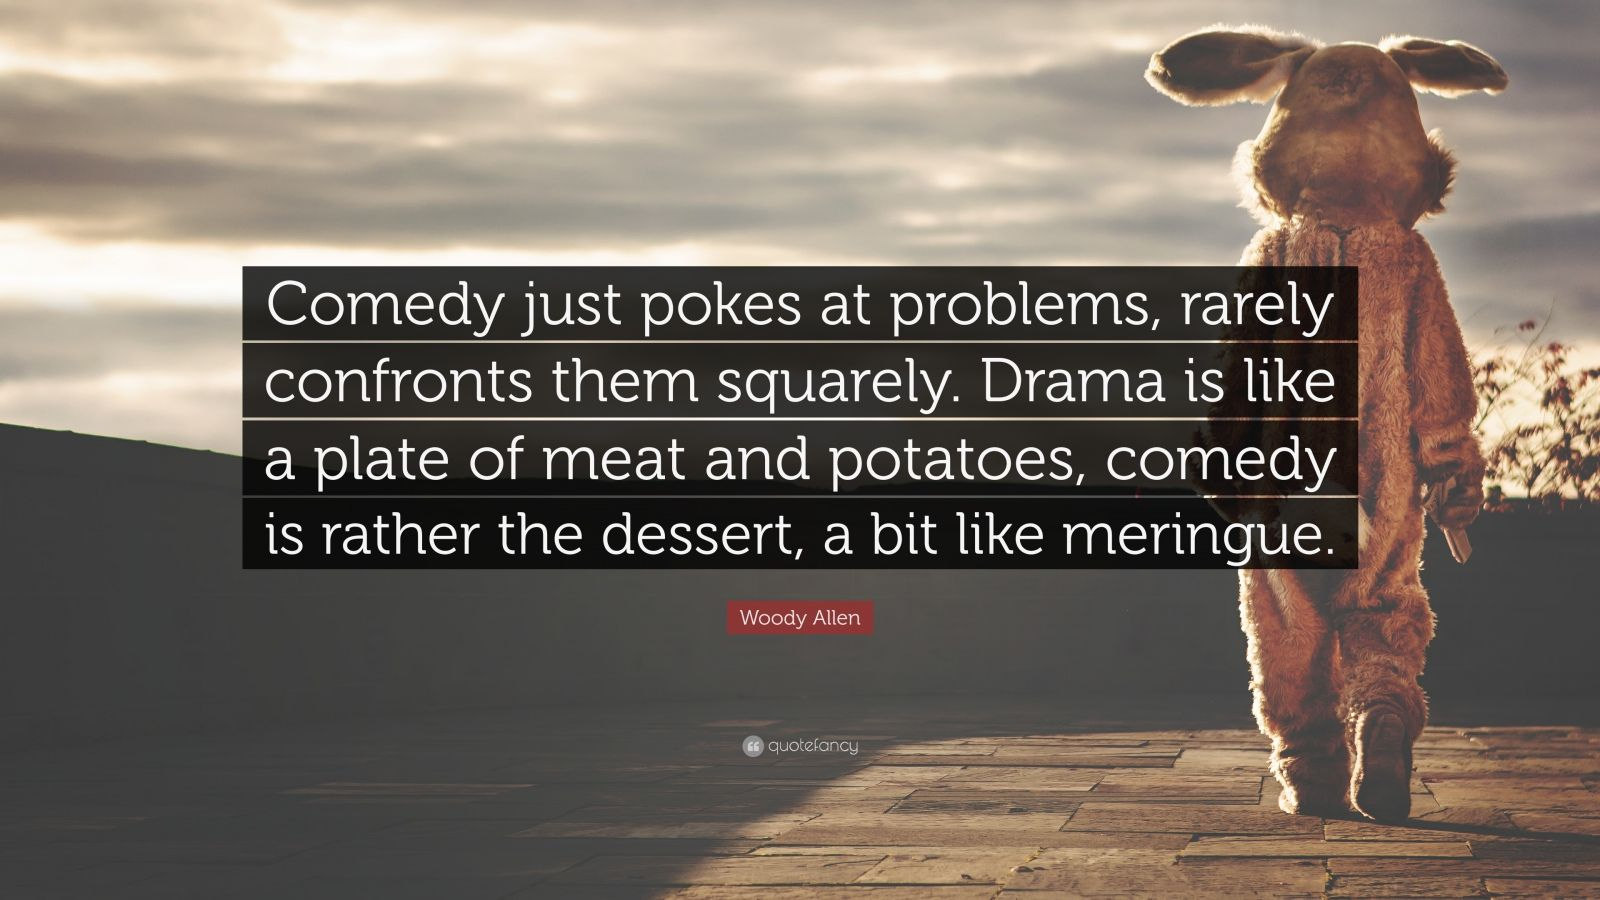 """Woody Allen Quote: """"Comedy just pokes at problems, rarely confronts them squarely. Drama is like a plate of meat and potatoes, comedy is rather the dessert, a bit like meringue."""""""